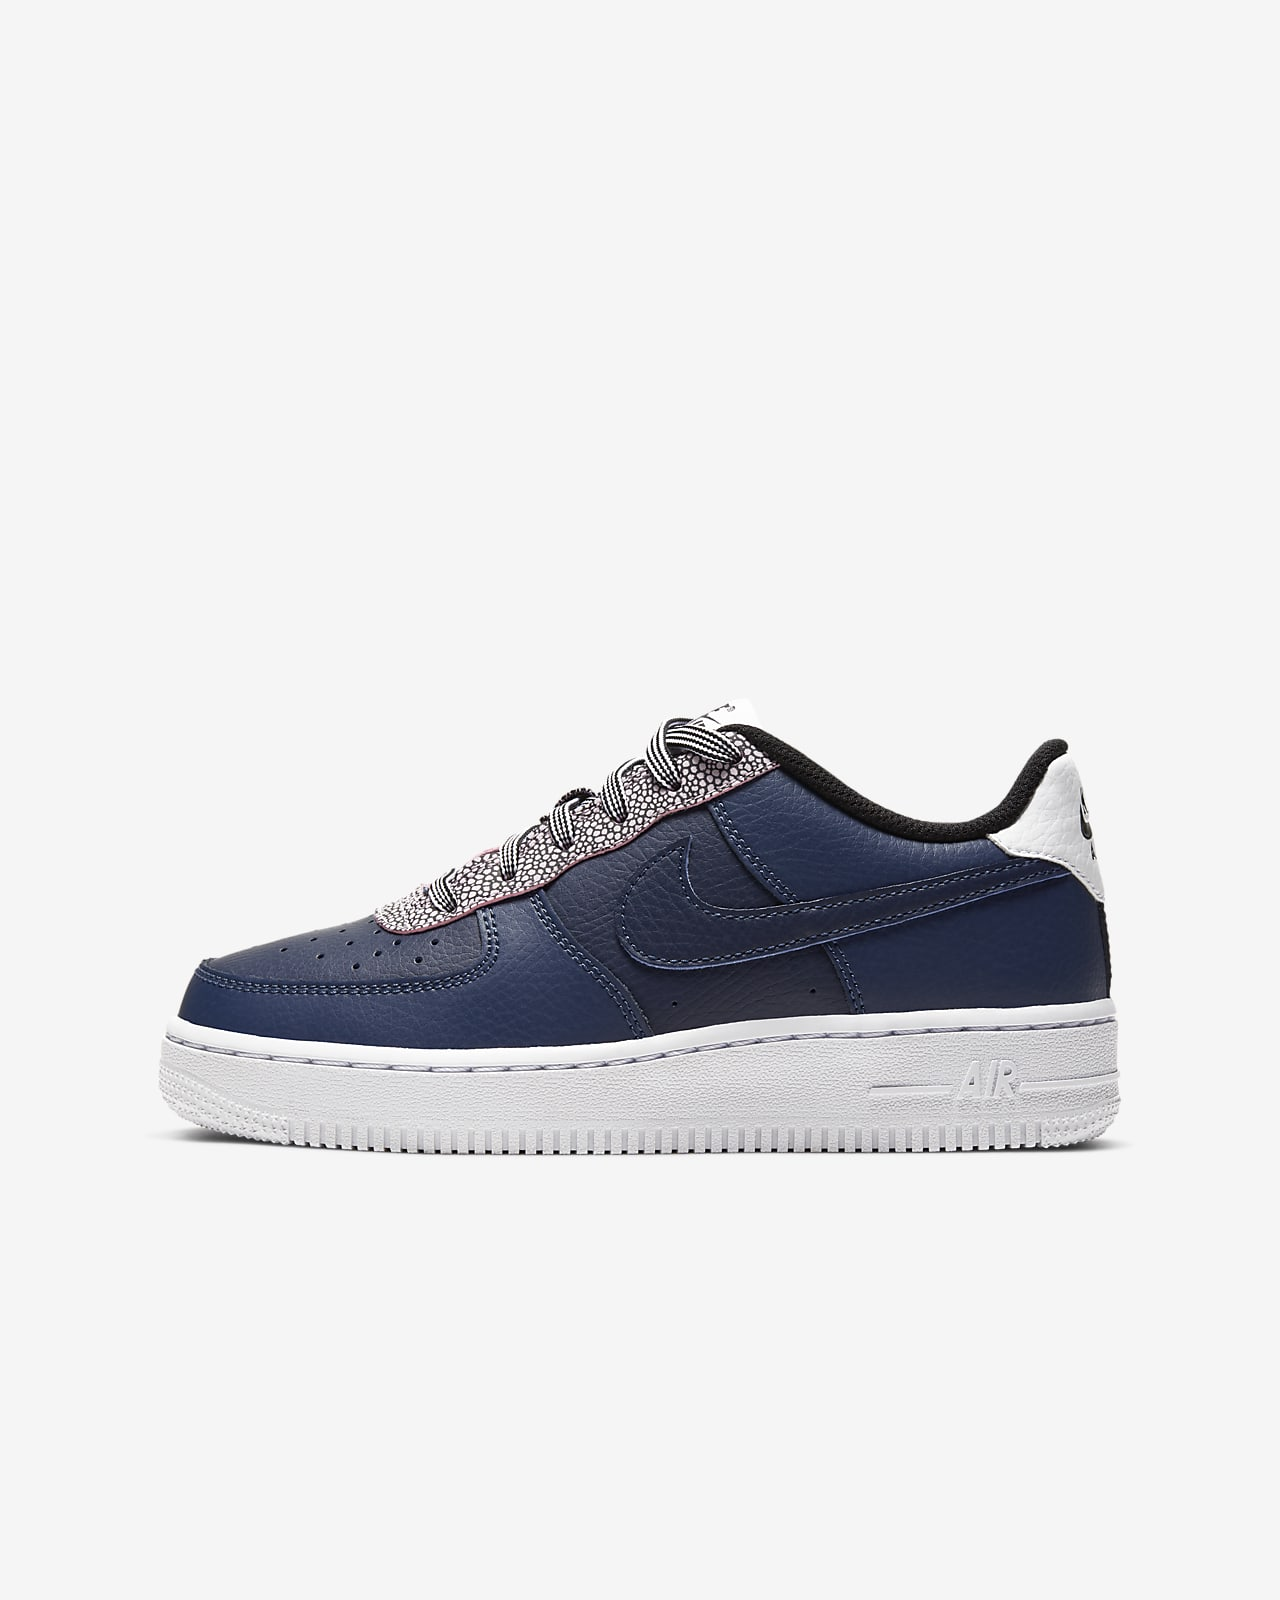 Nike Air Force 1 LV8 4 Big Kids' Shoe